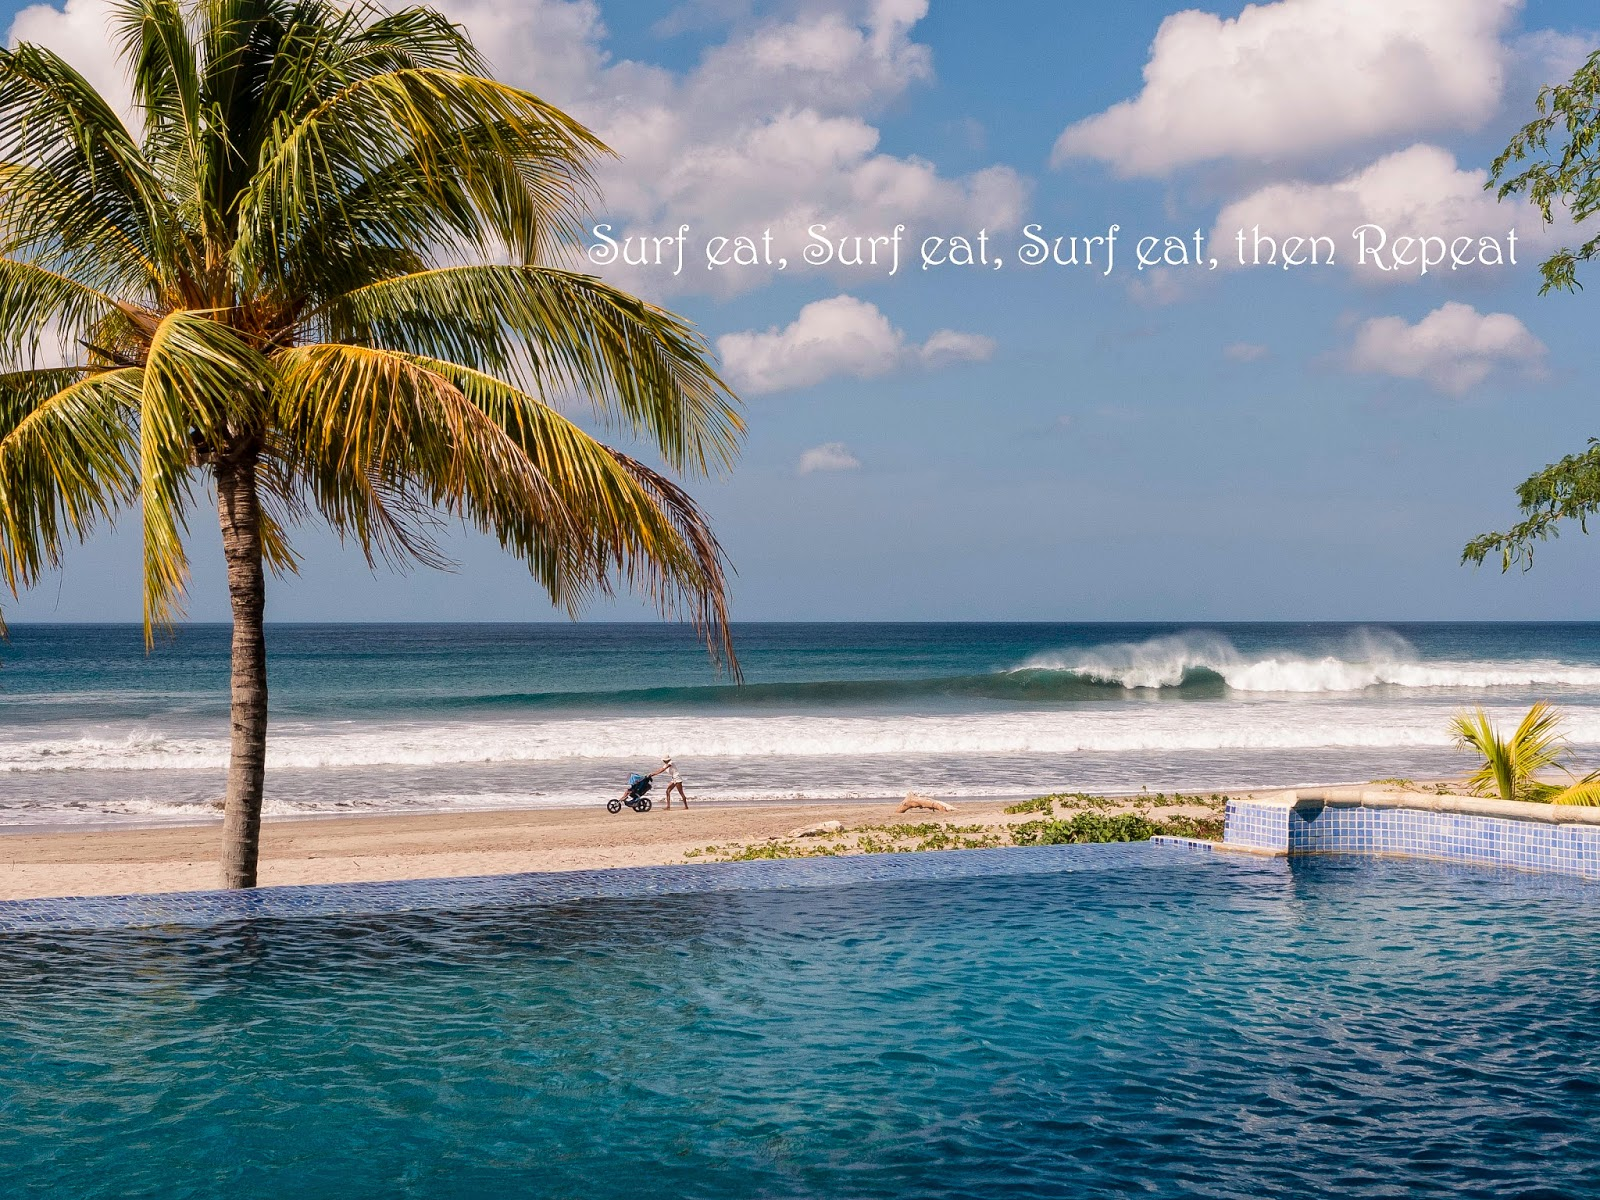 http://www.gorseandcoconuts.com/2014/06/surf-eat-surf-eat-surf-eat-then-repeat.html